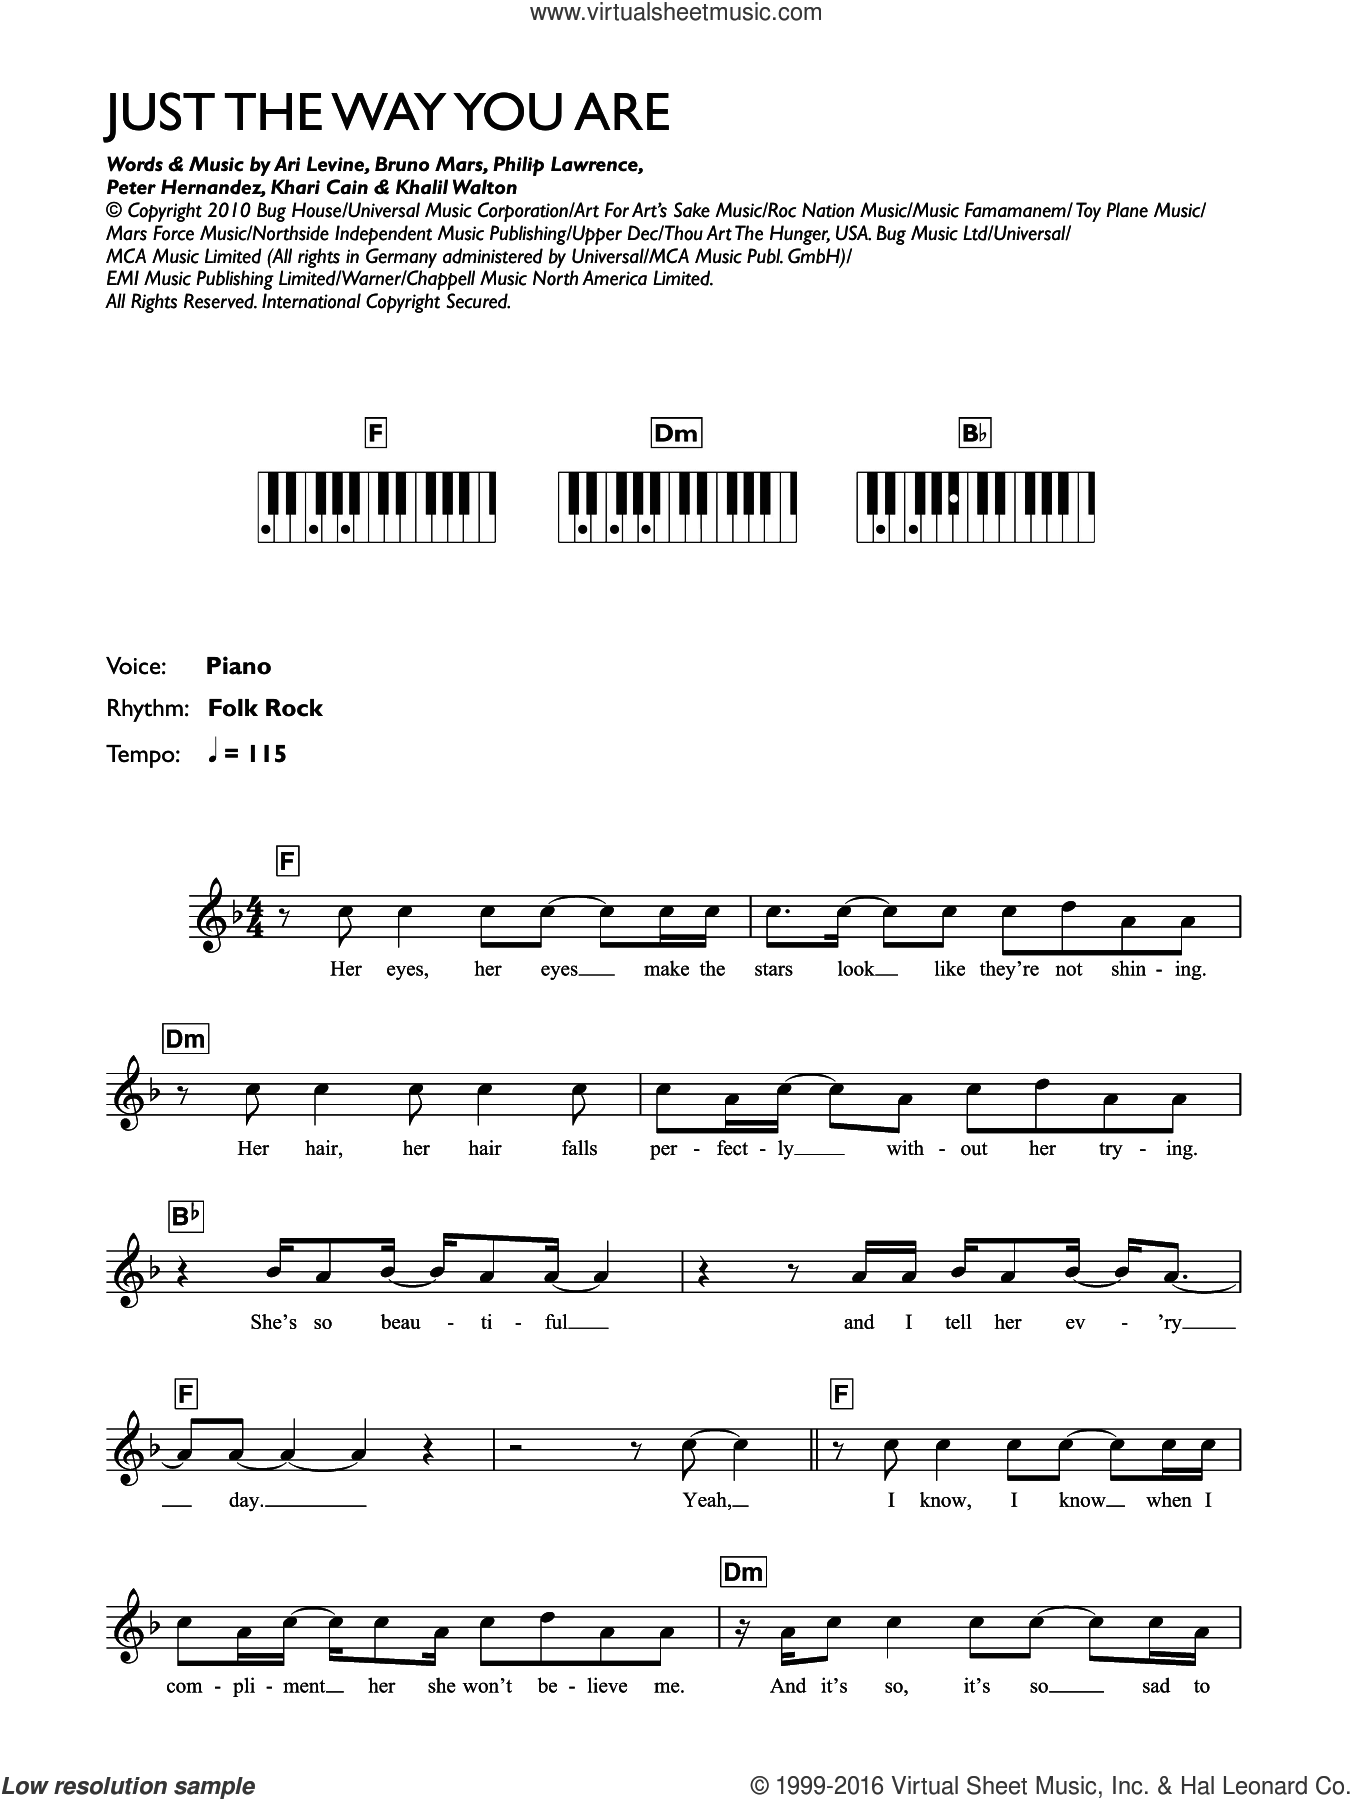 Just The Way You Are sheet music for piano solo (keyboard) by Bruno Mars, Ari Levine, Khalil Walton, Khari Cain, Peter Hernandez and Philip Lawrence, intermediate piano (keyboard)